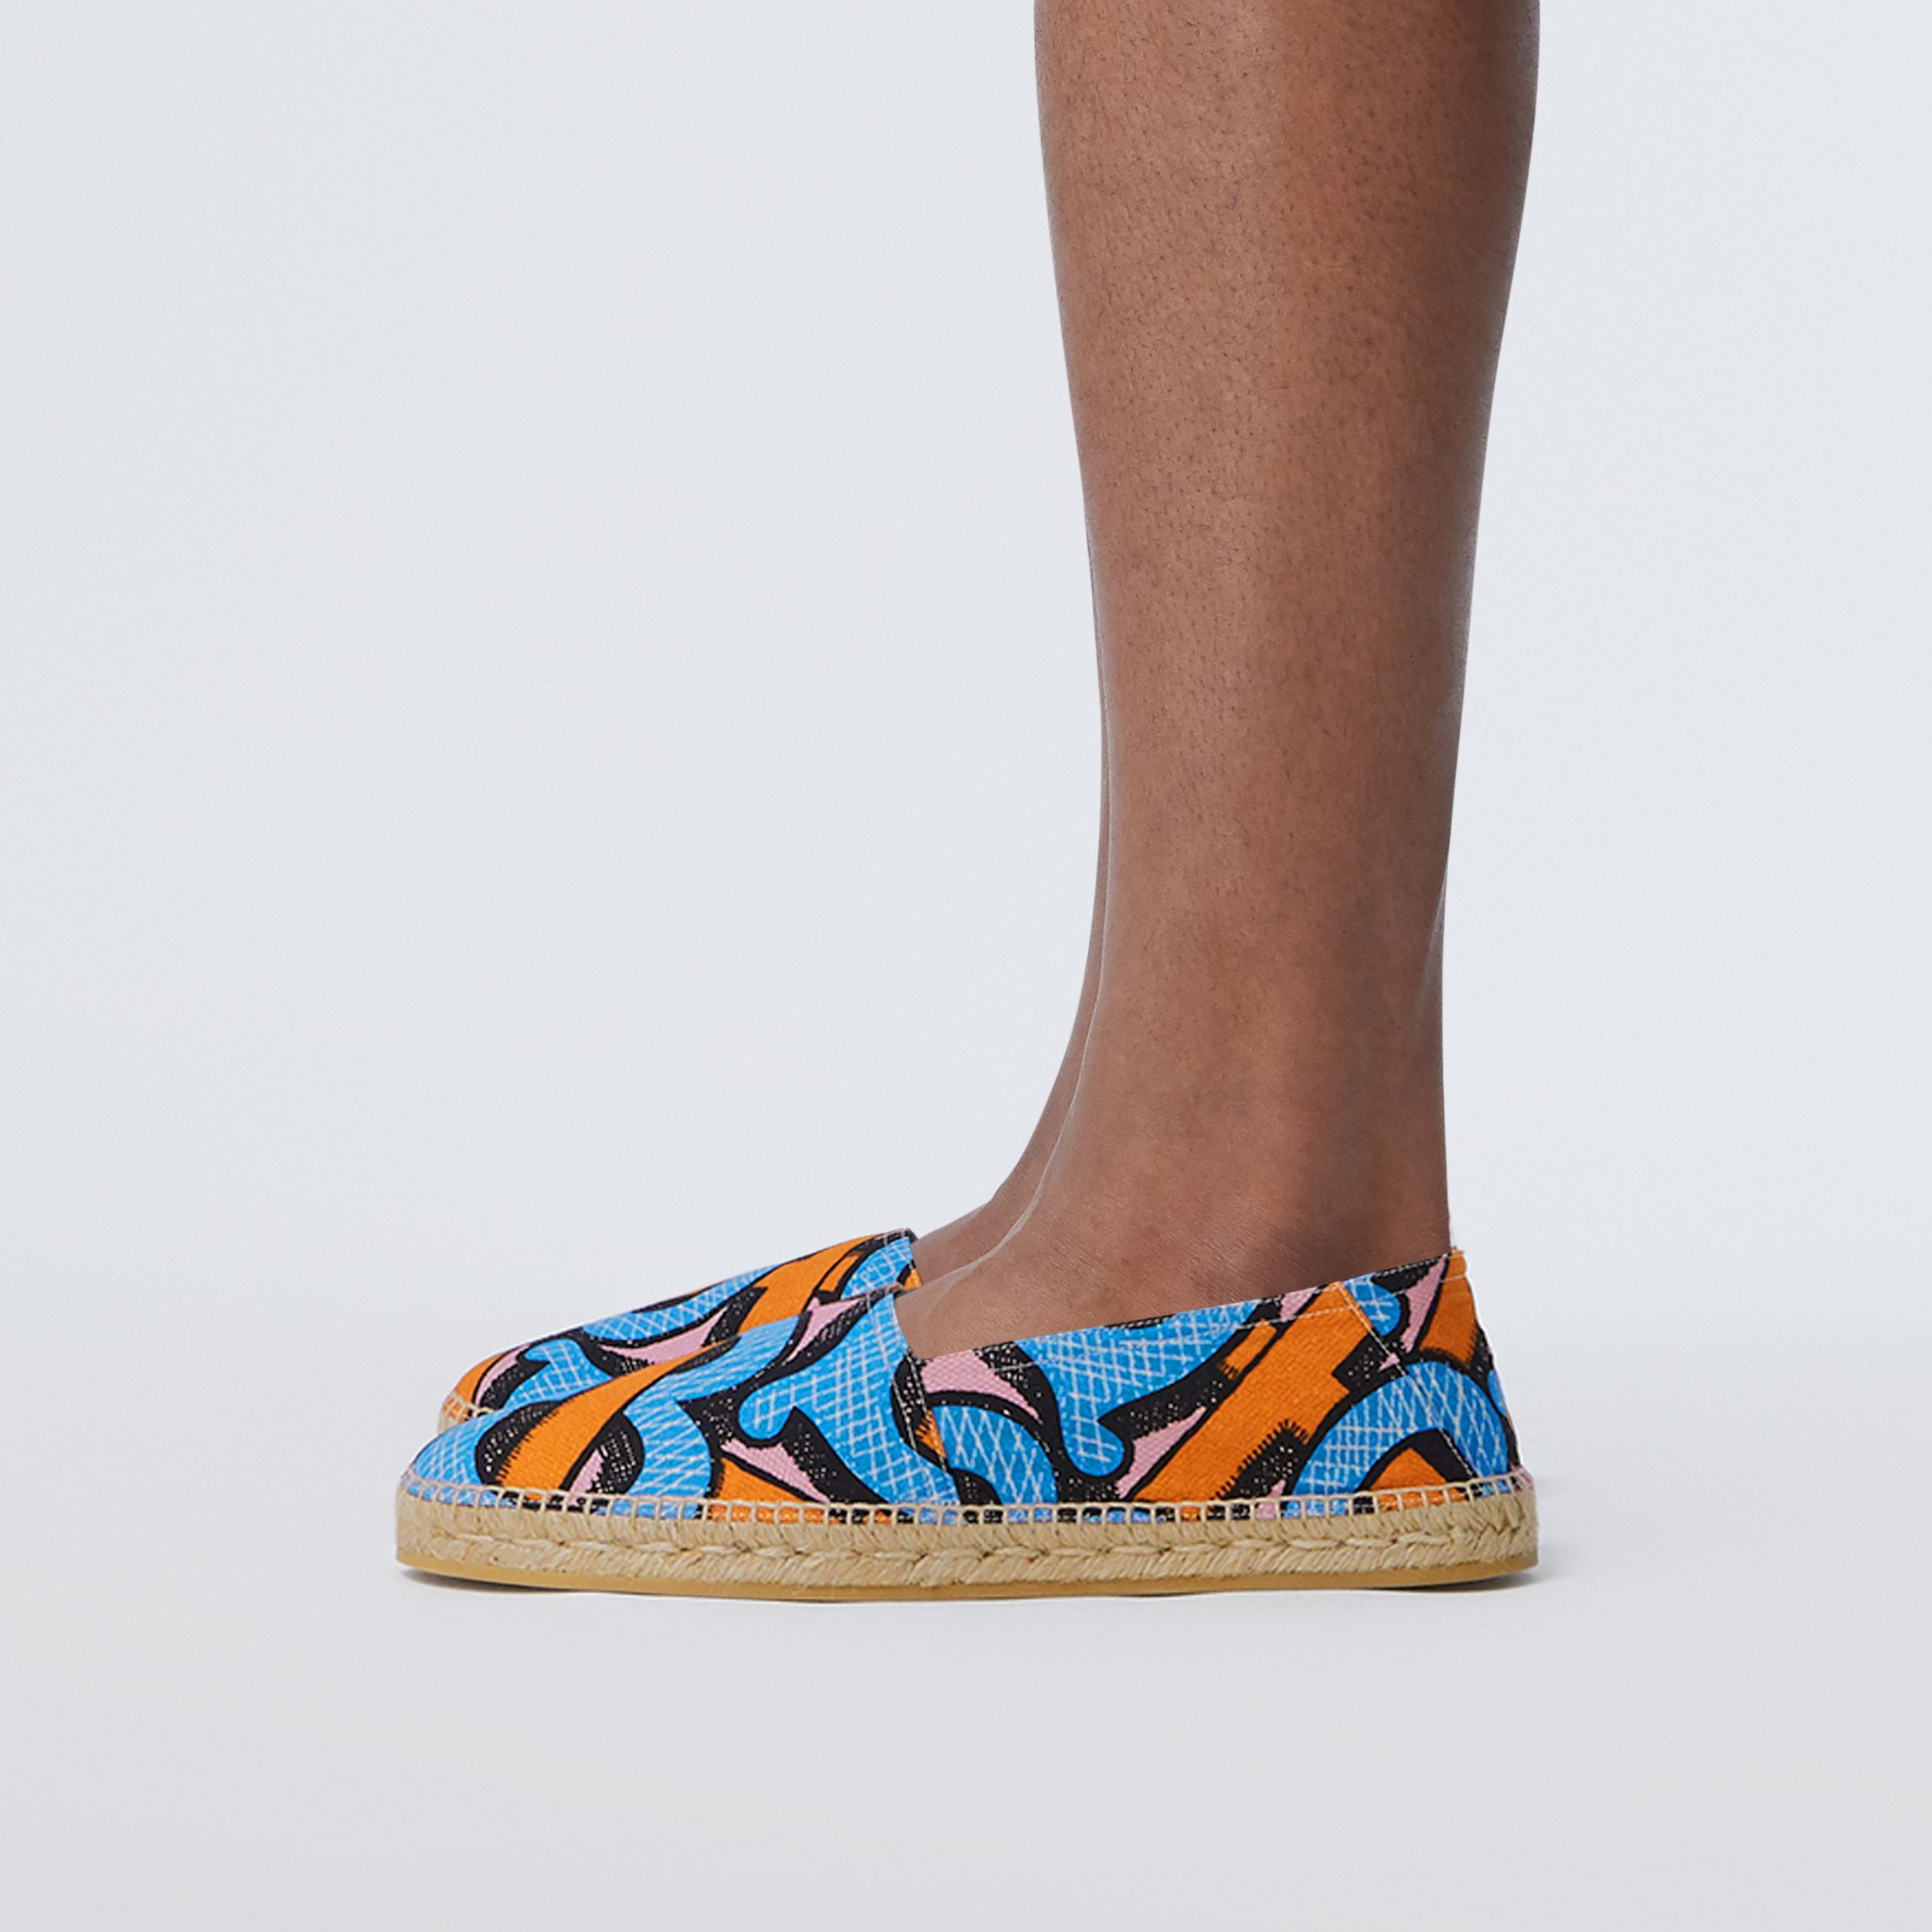 Monogram Print Cotton Canvas Espadrilles in Bright Cobalt - Men | Burberry - 3